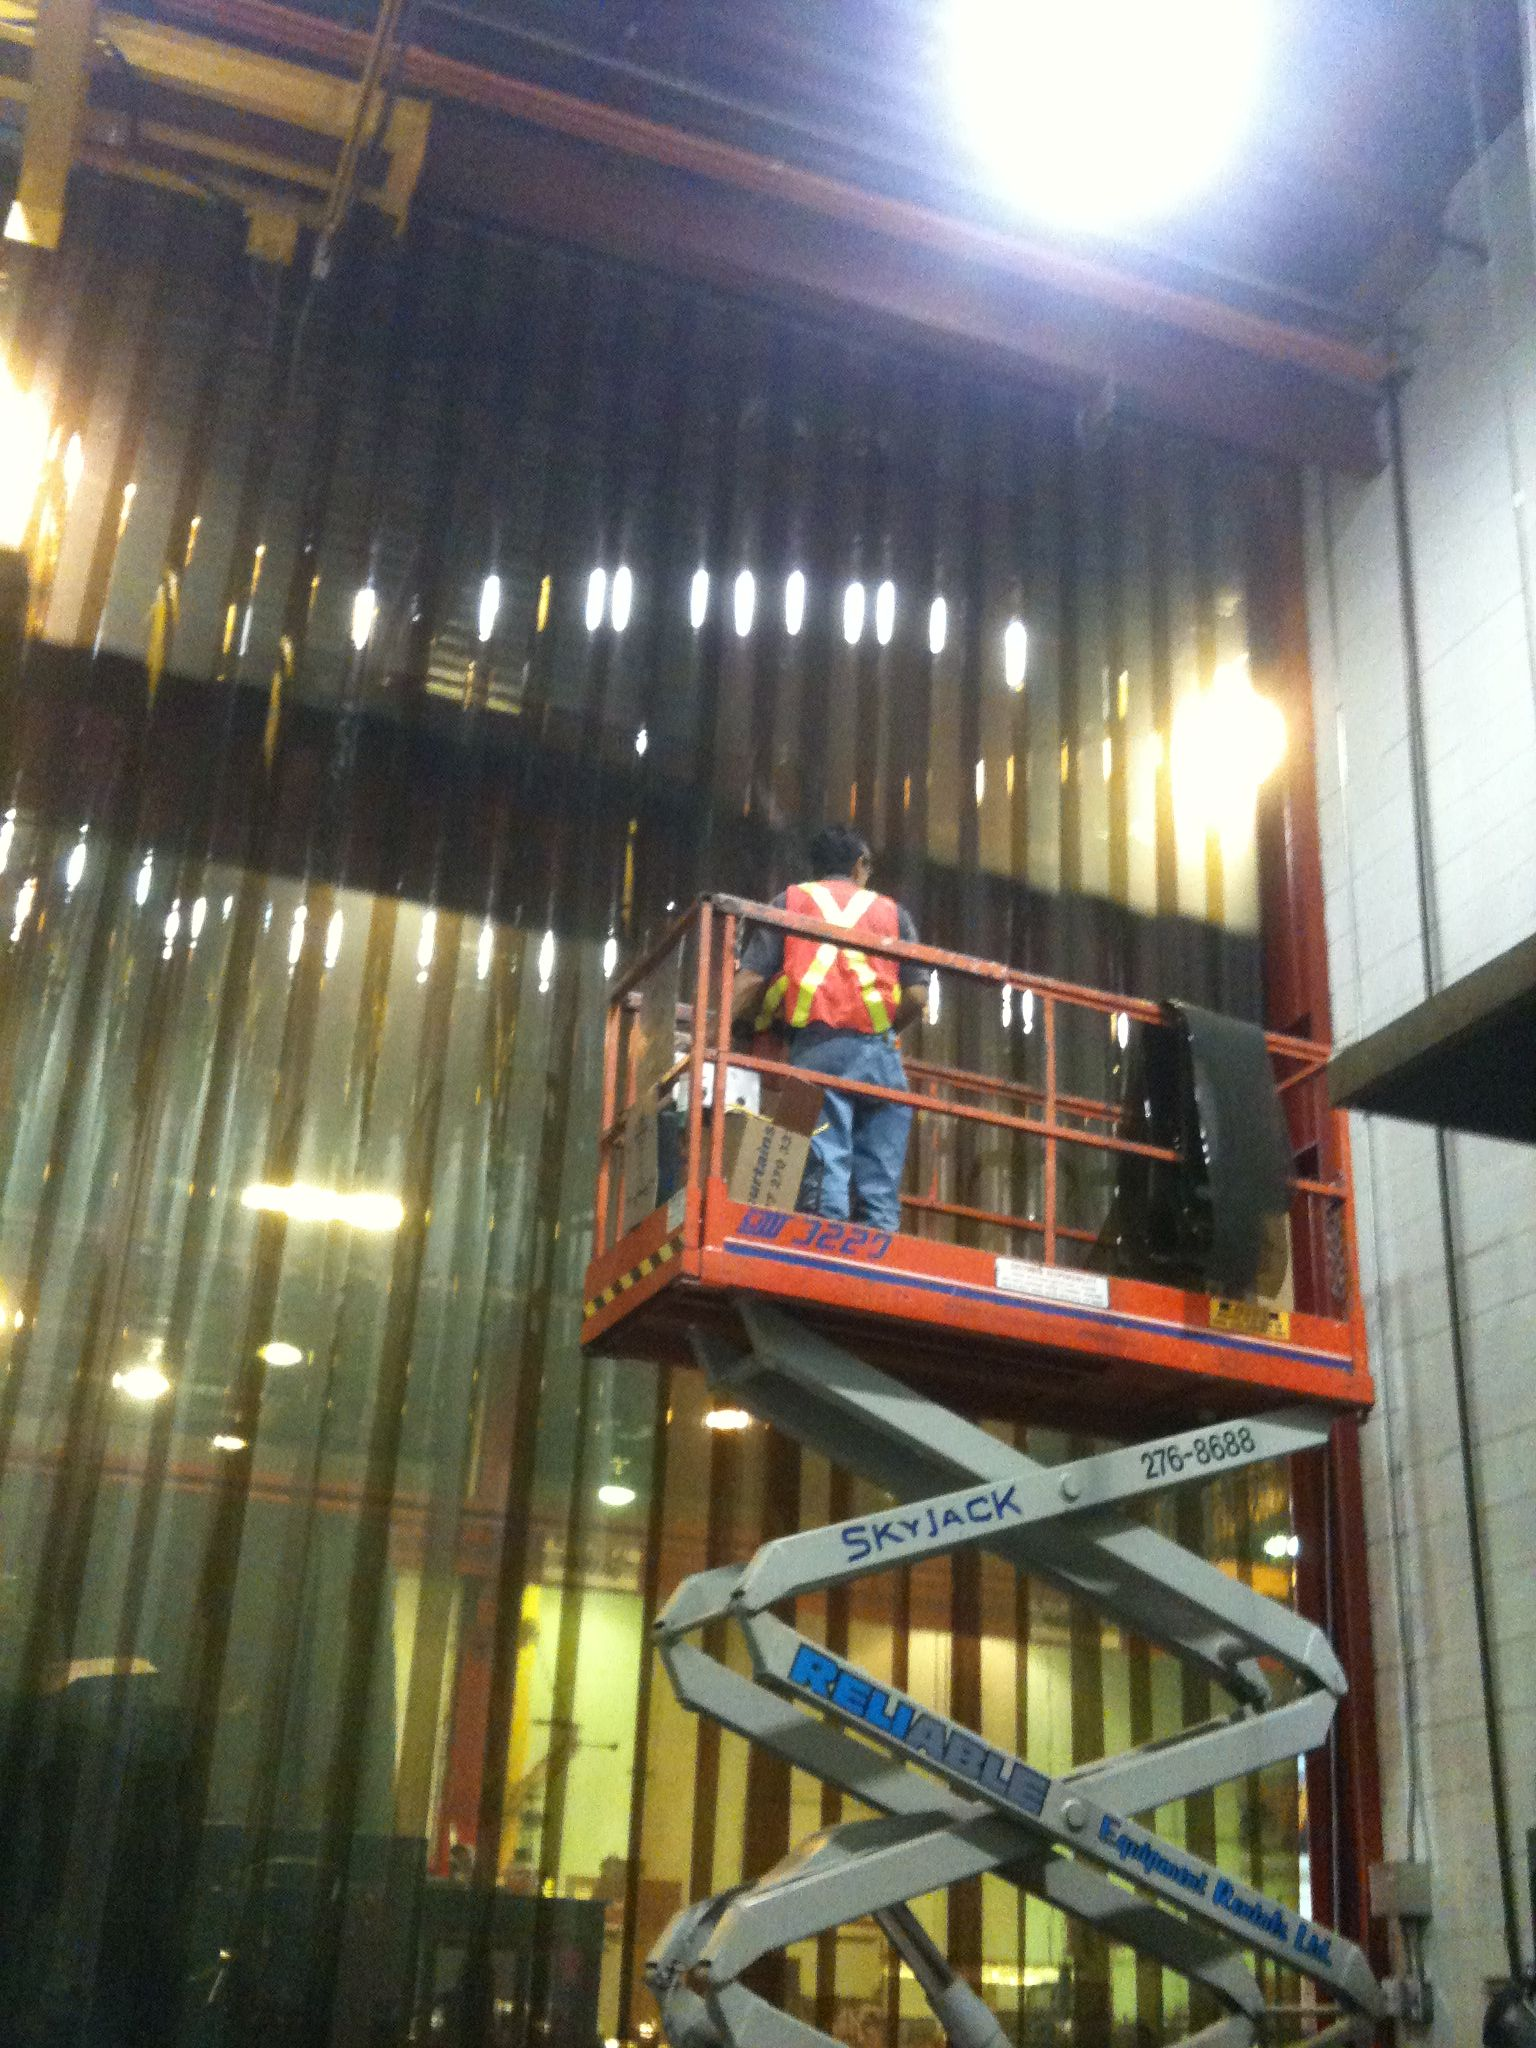 Strip Curtain Wall Exhibits 12 Amber Weld Strip Material With A